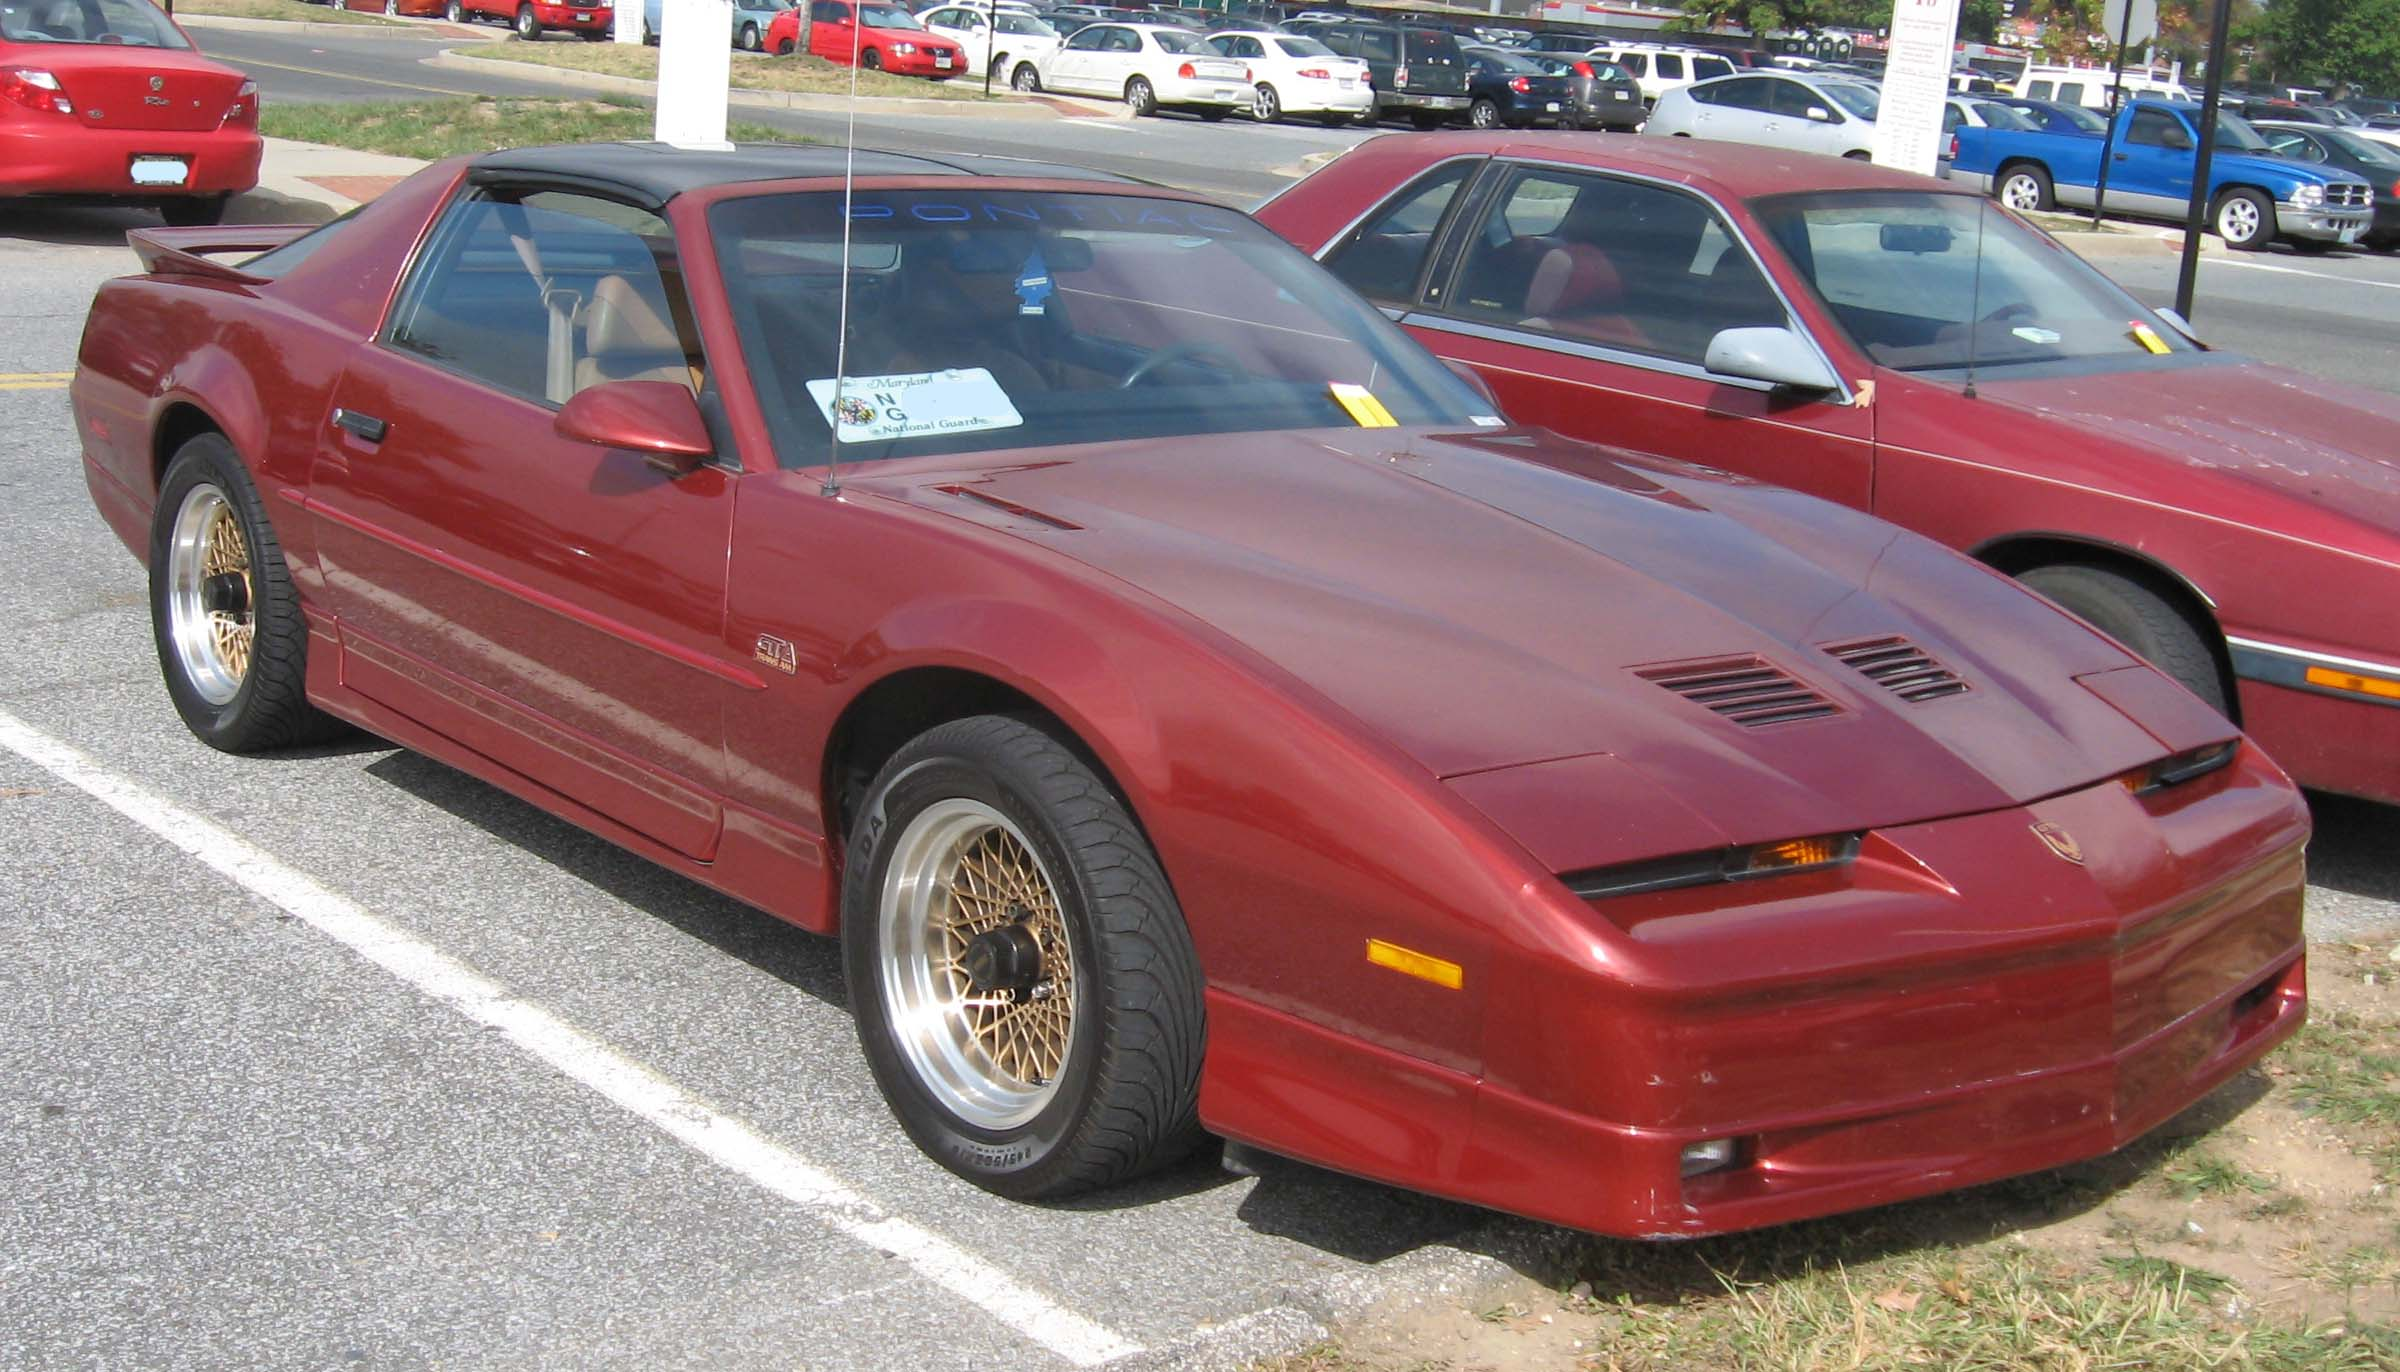 Pontiac transam photo - 4